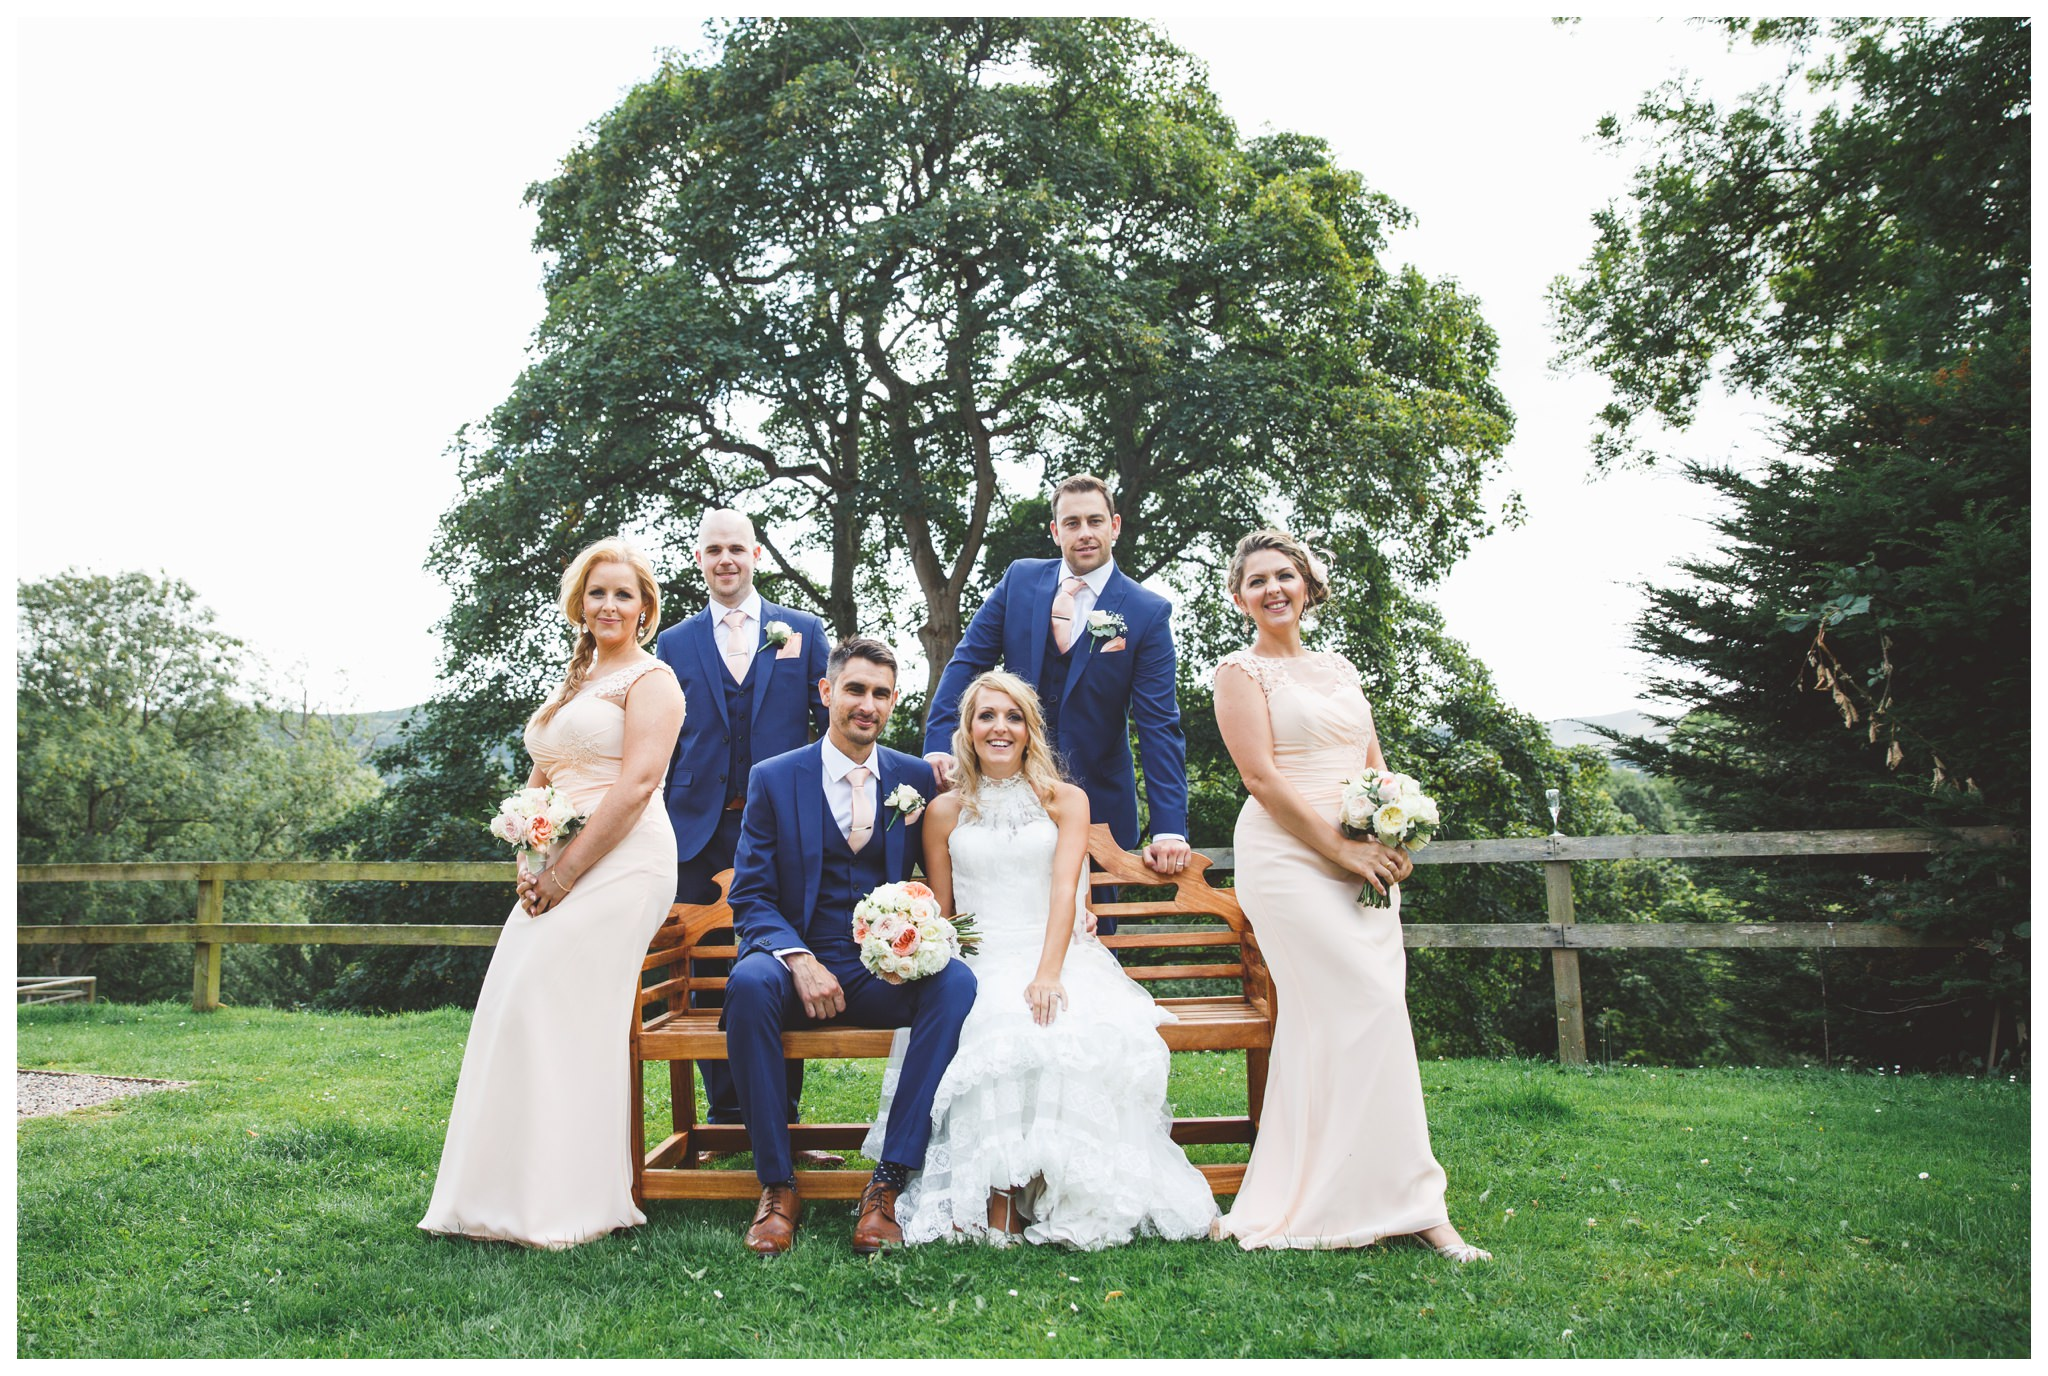 Richard Savage Photography - Wedding - Peterstone Court Brecon - 2016-05-11_0040